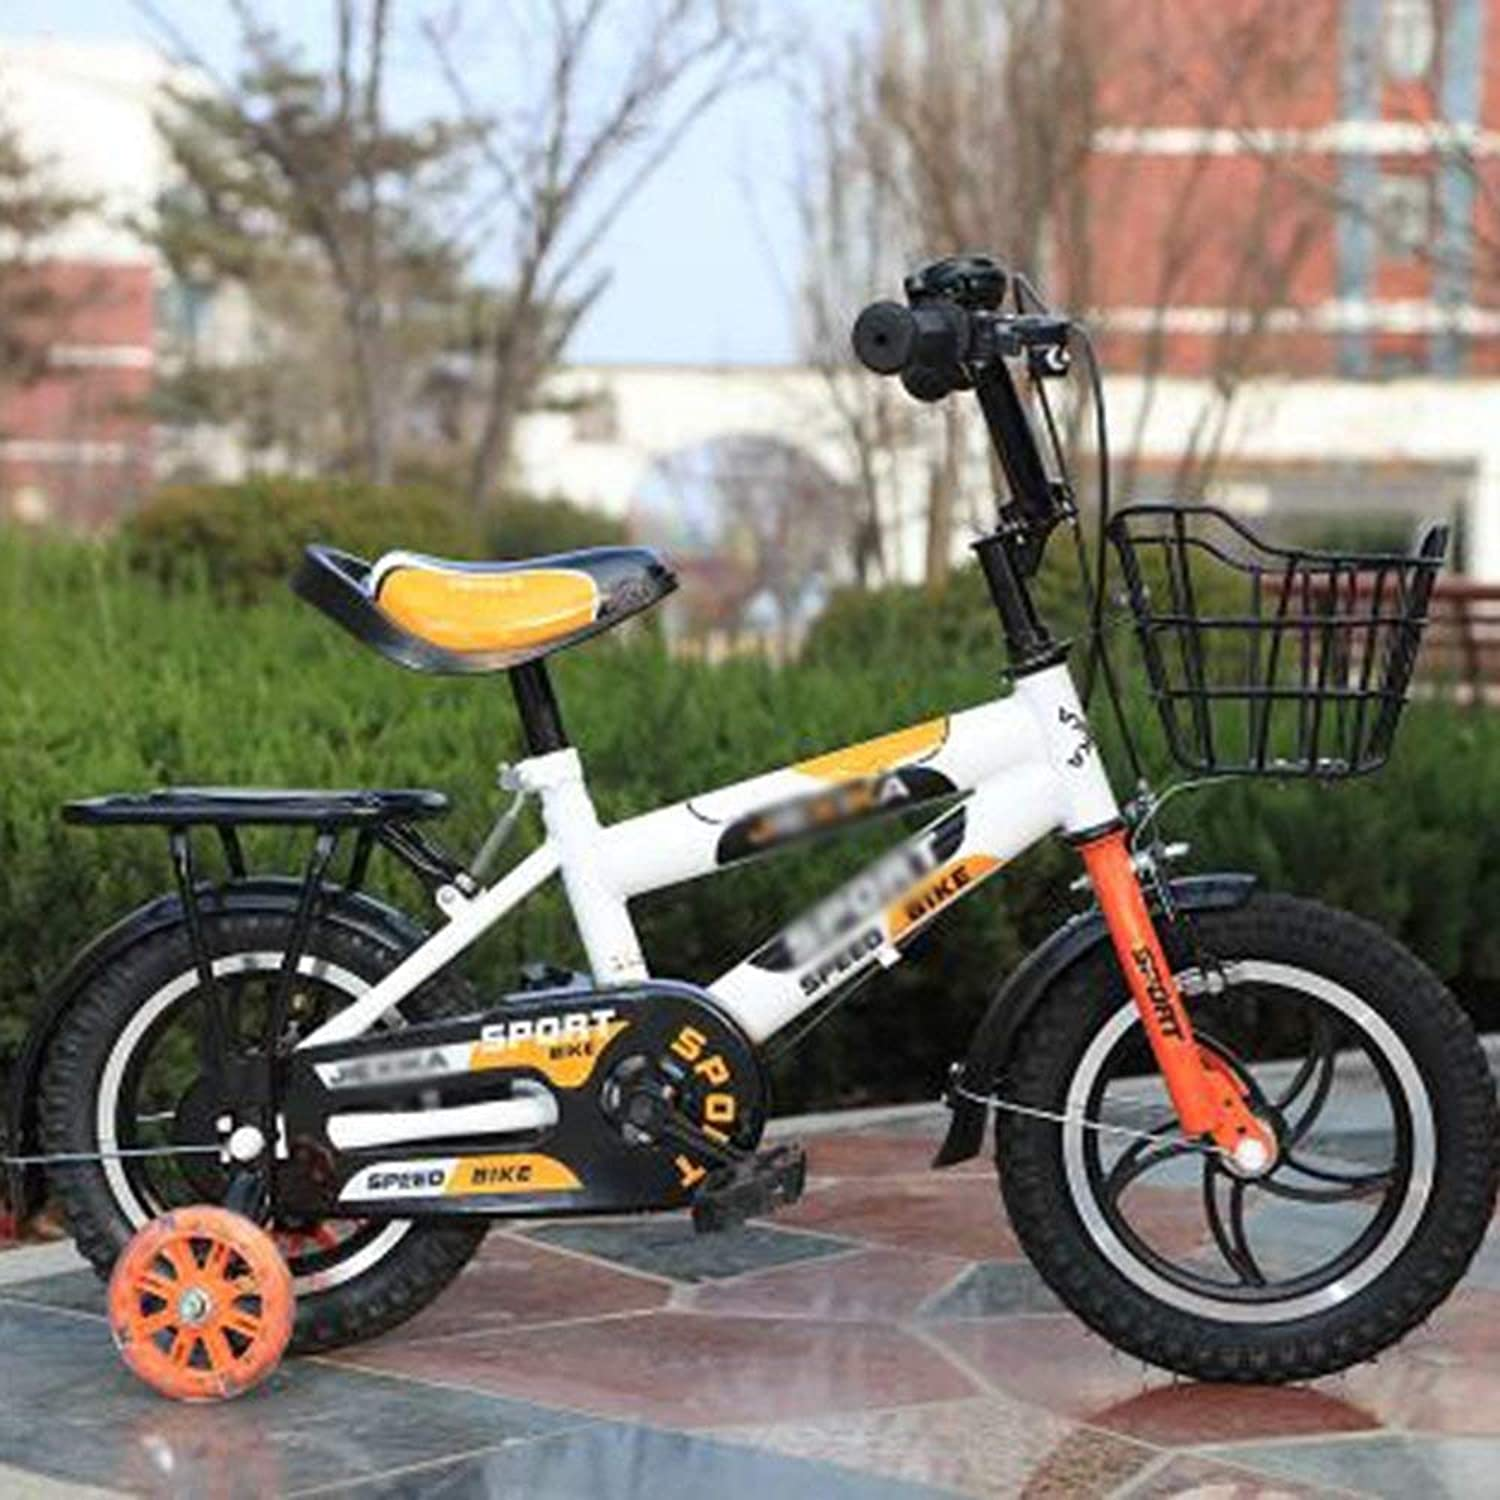 Boy's Bike with Basket, 14, 16 or 20 inch Bike with Training Wheels, Gifts for Kids, Boy's Bicycles for Newborn (color   orange, Size   14 inches)-orange,14 inches